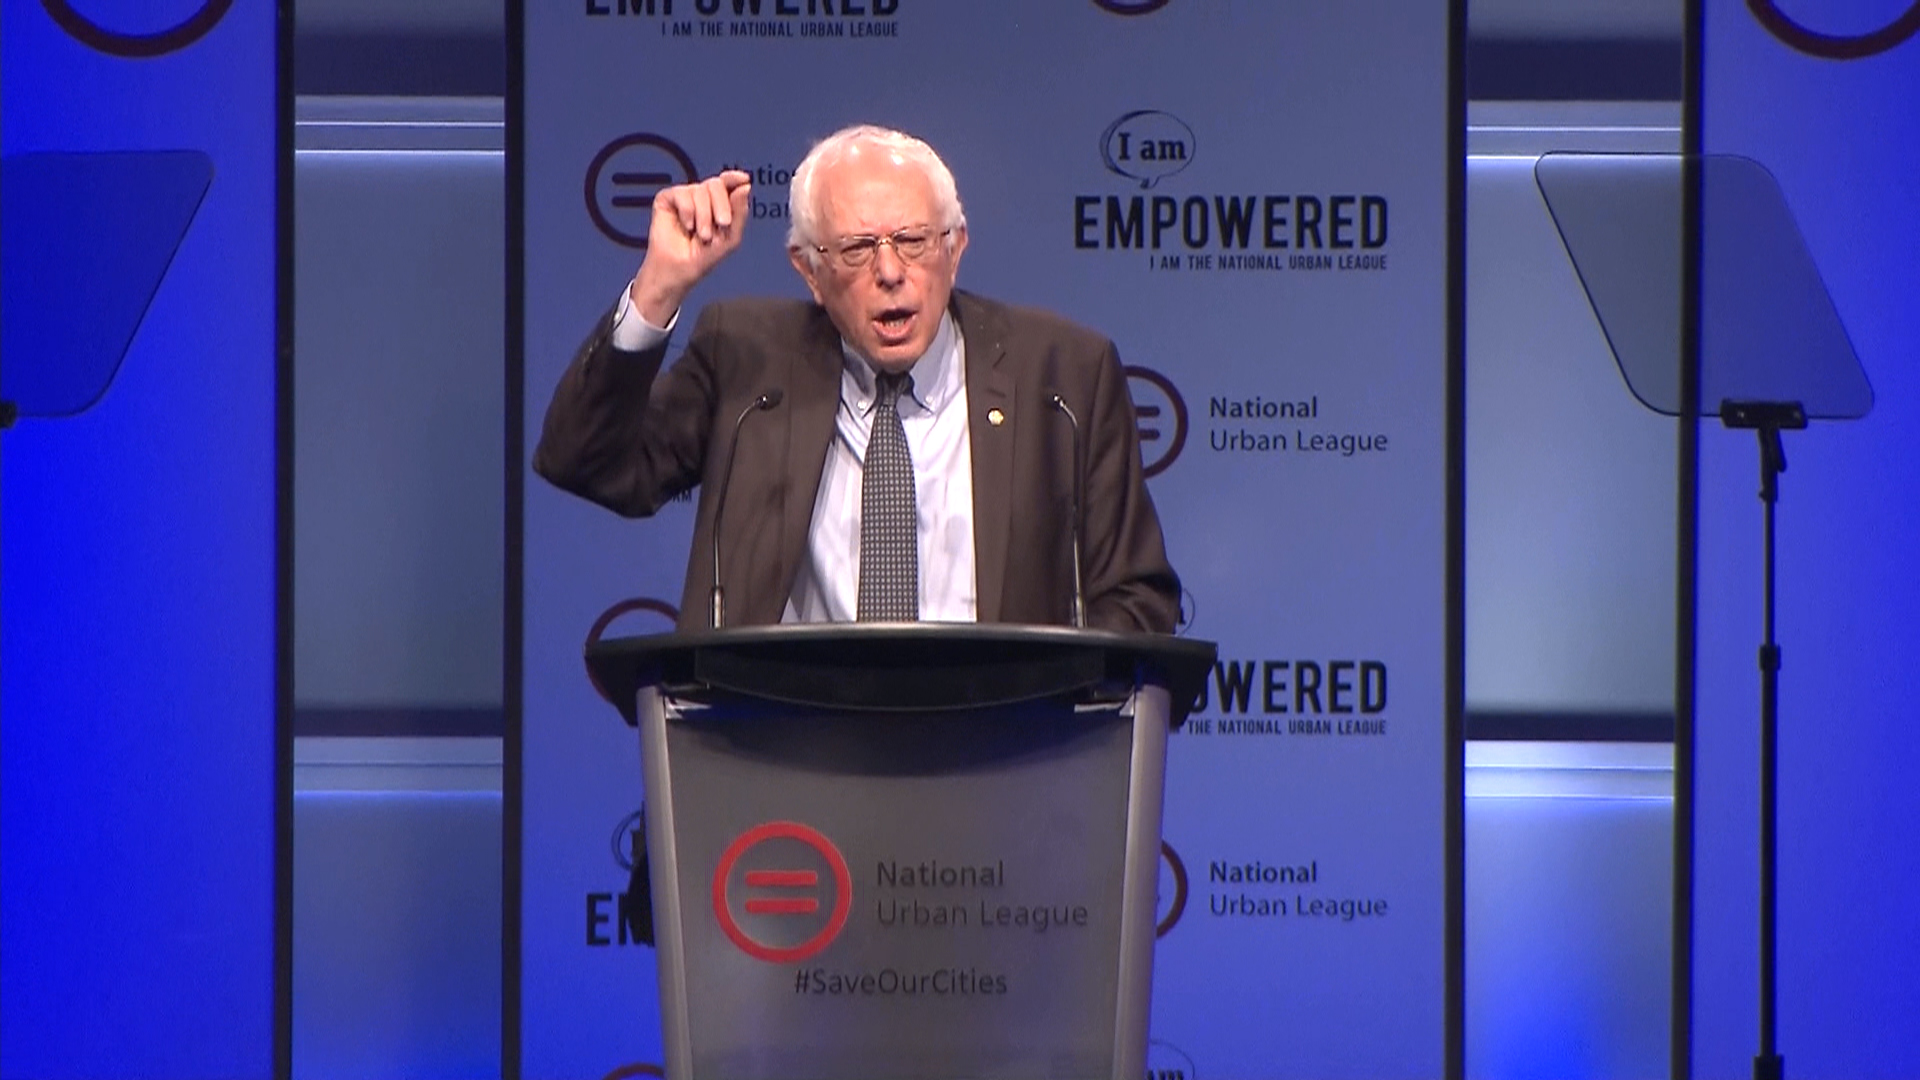 Sanders: We need some new thinking